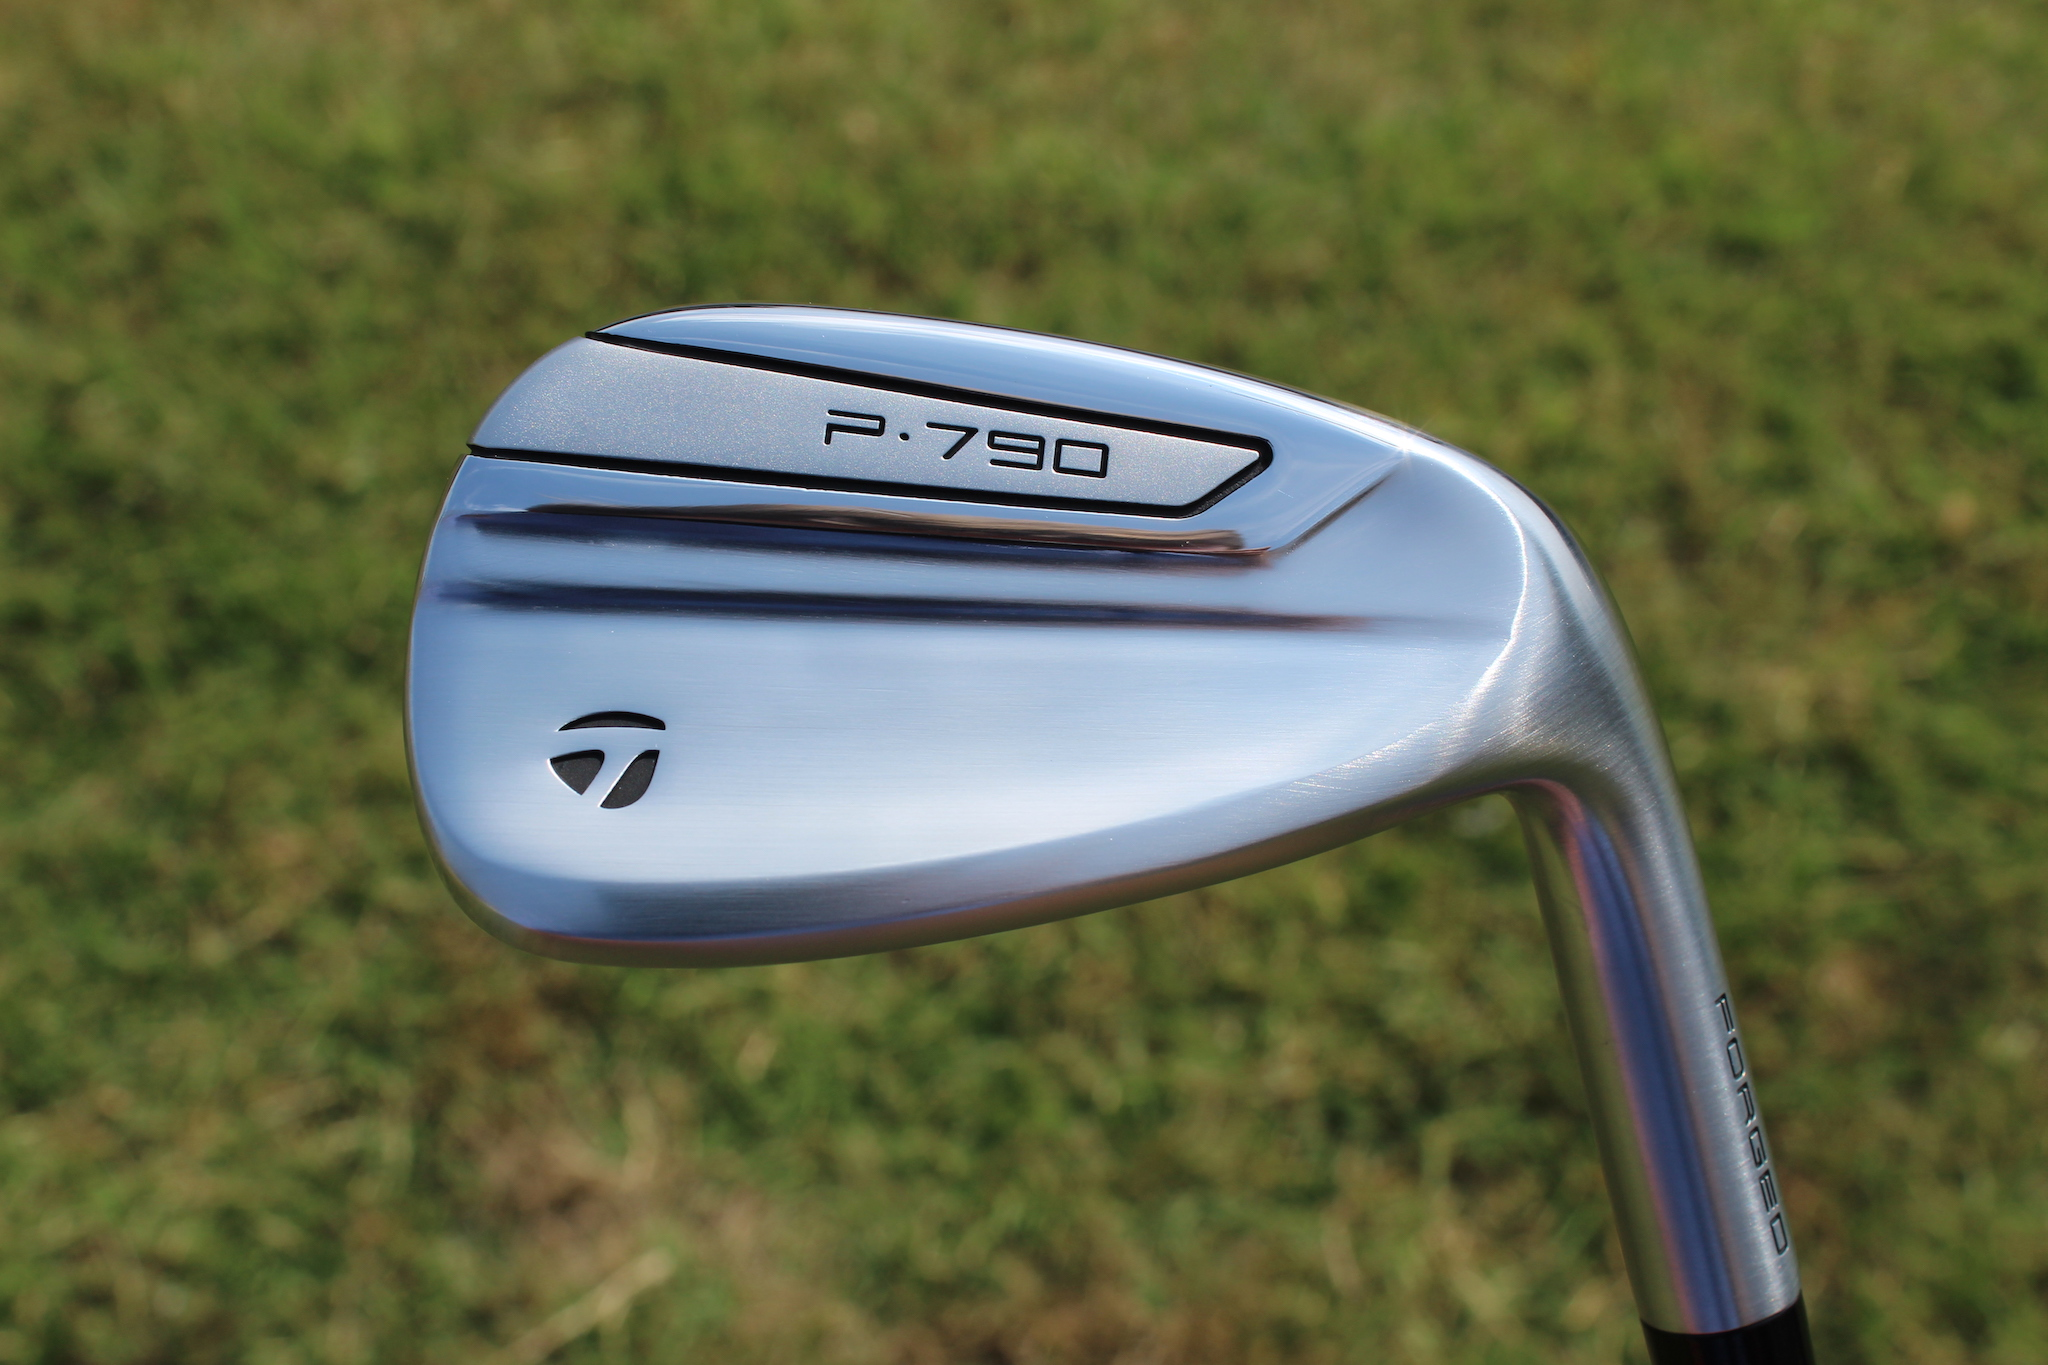 2019 taylormade p790 Pw iron back